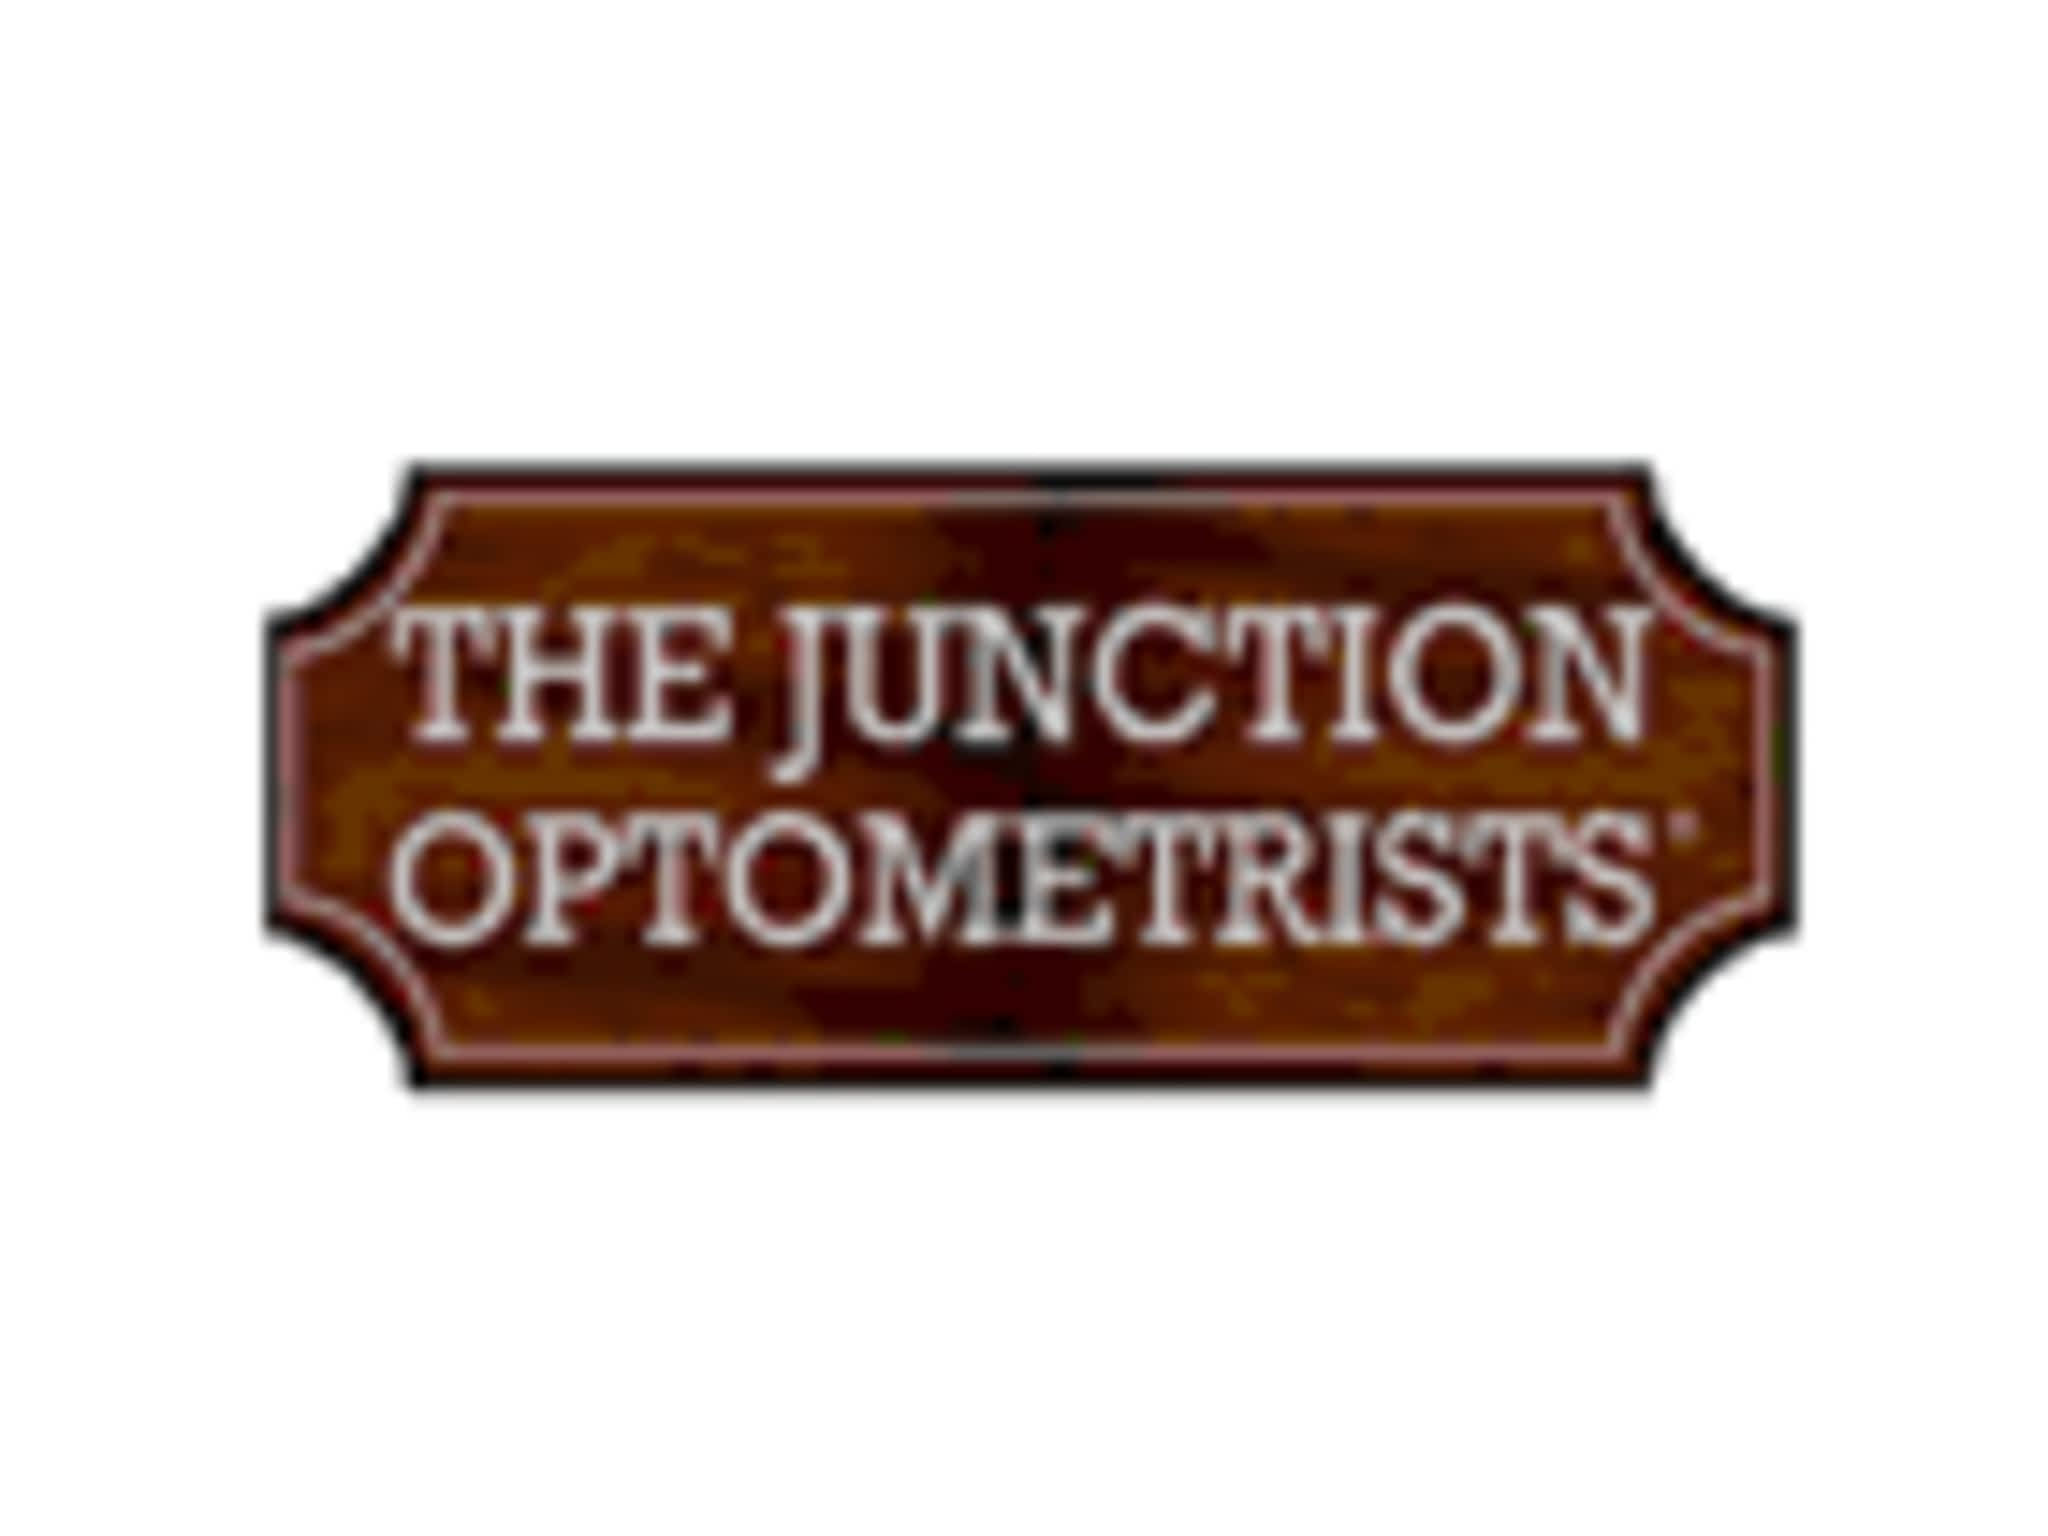 photo The Junction Optometrists